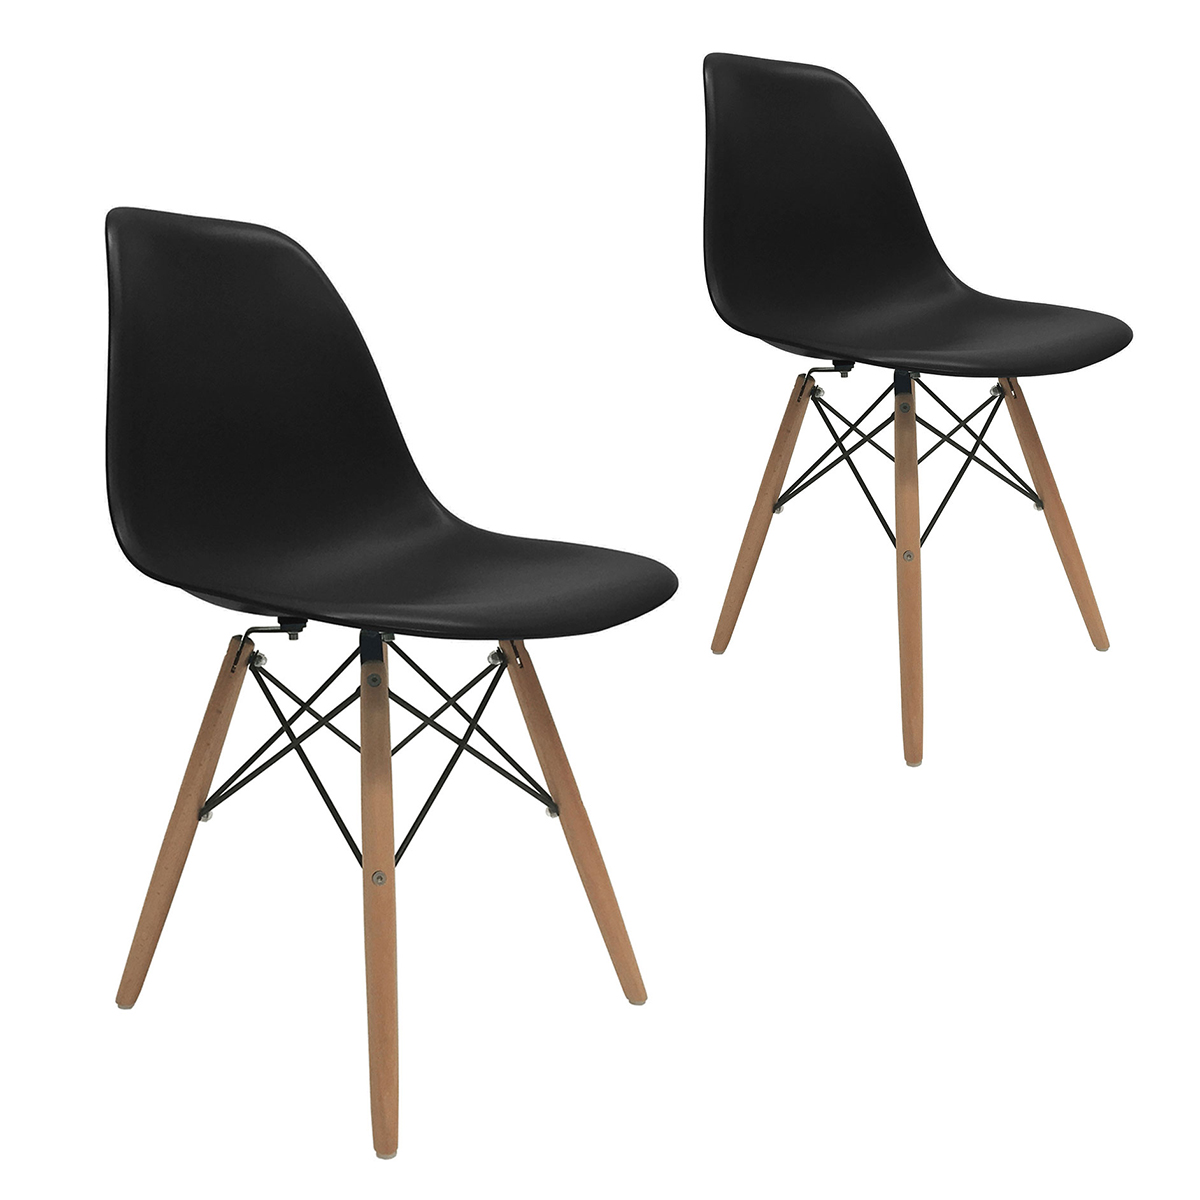 eames molded wood side chair kids table with 4 chairs set of 2 dsw dining eiffel dowel leg